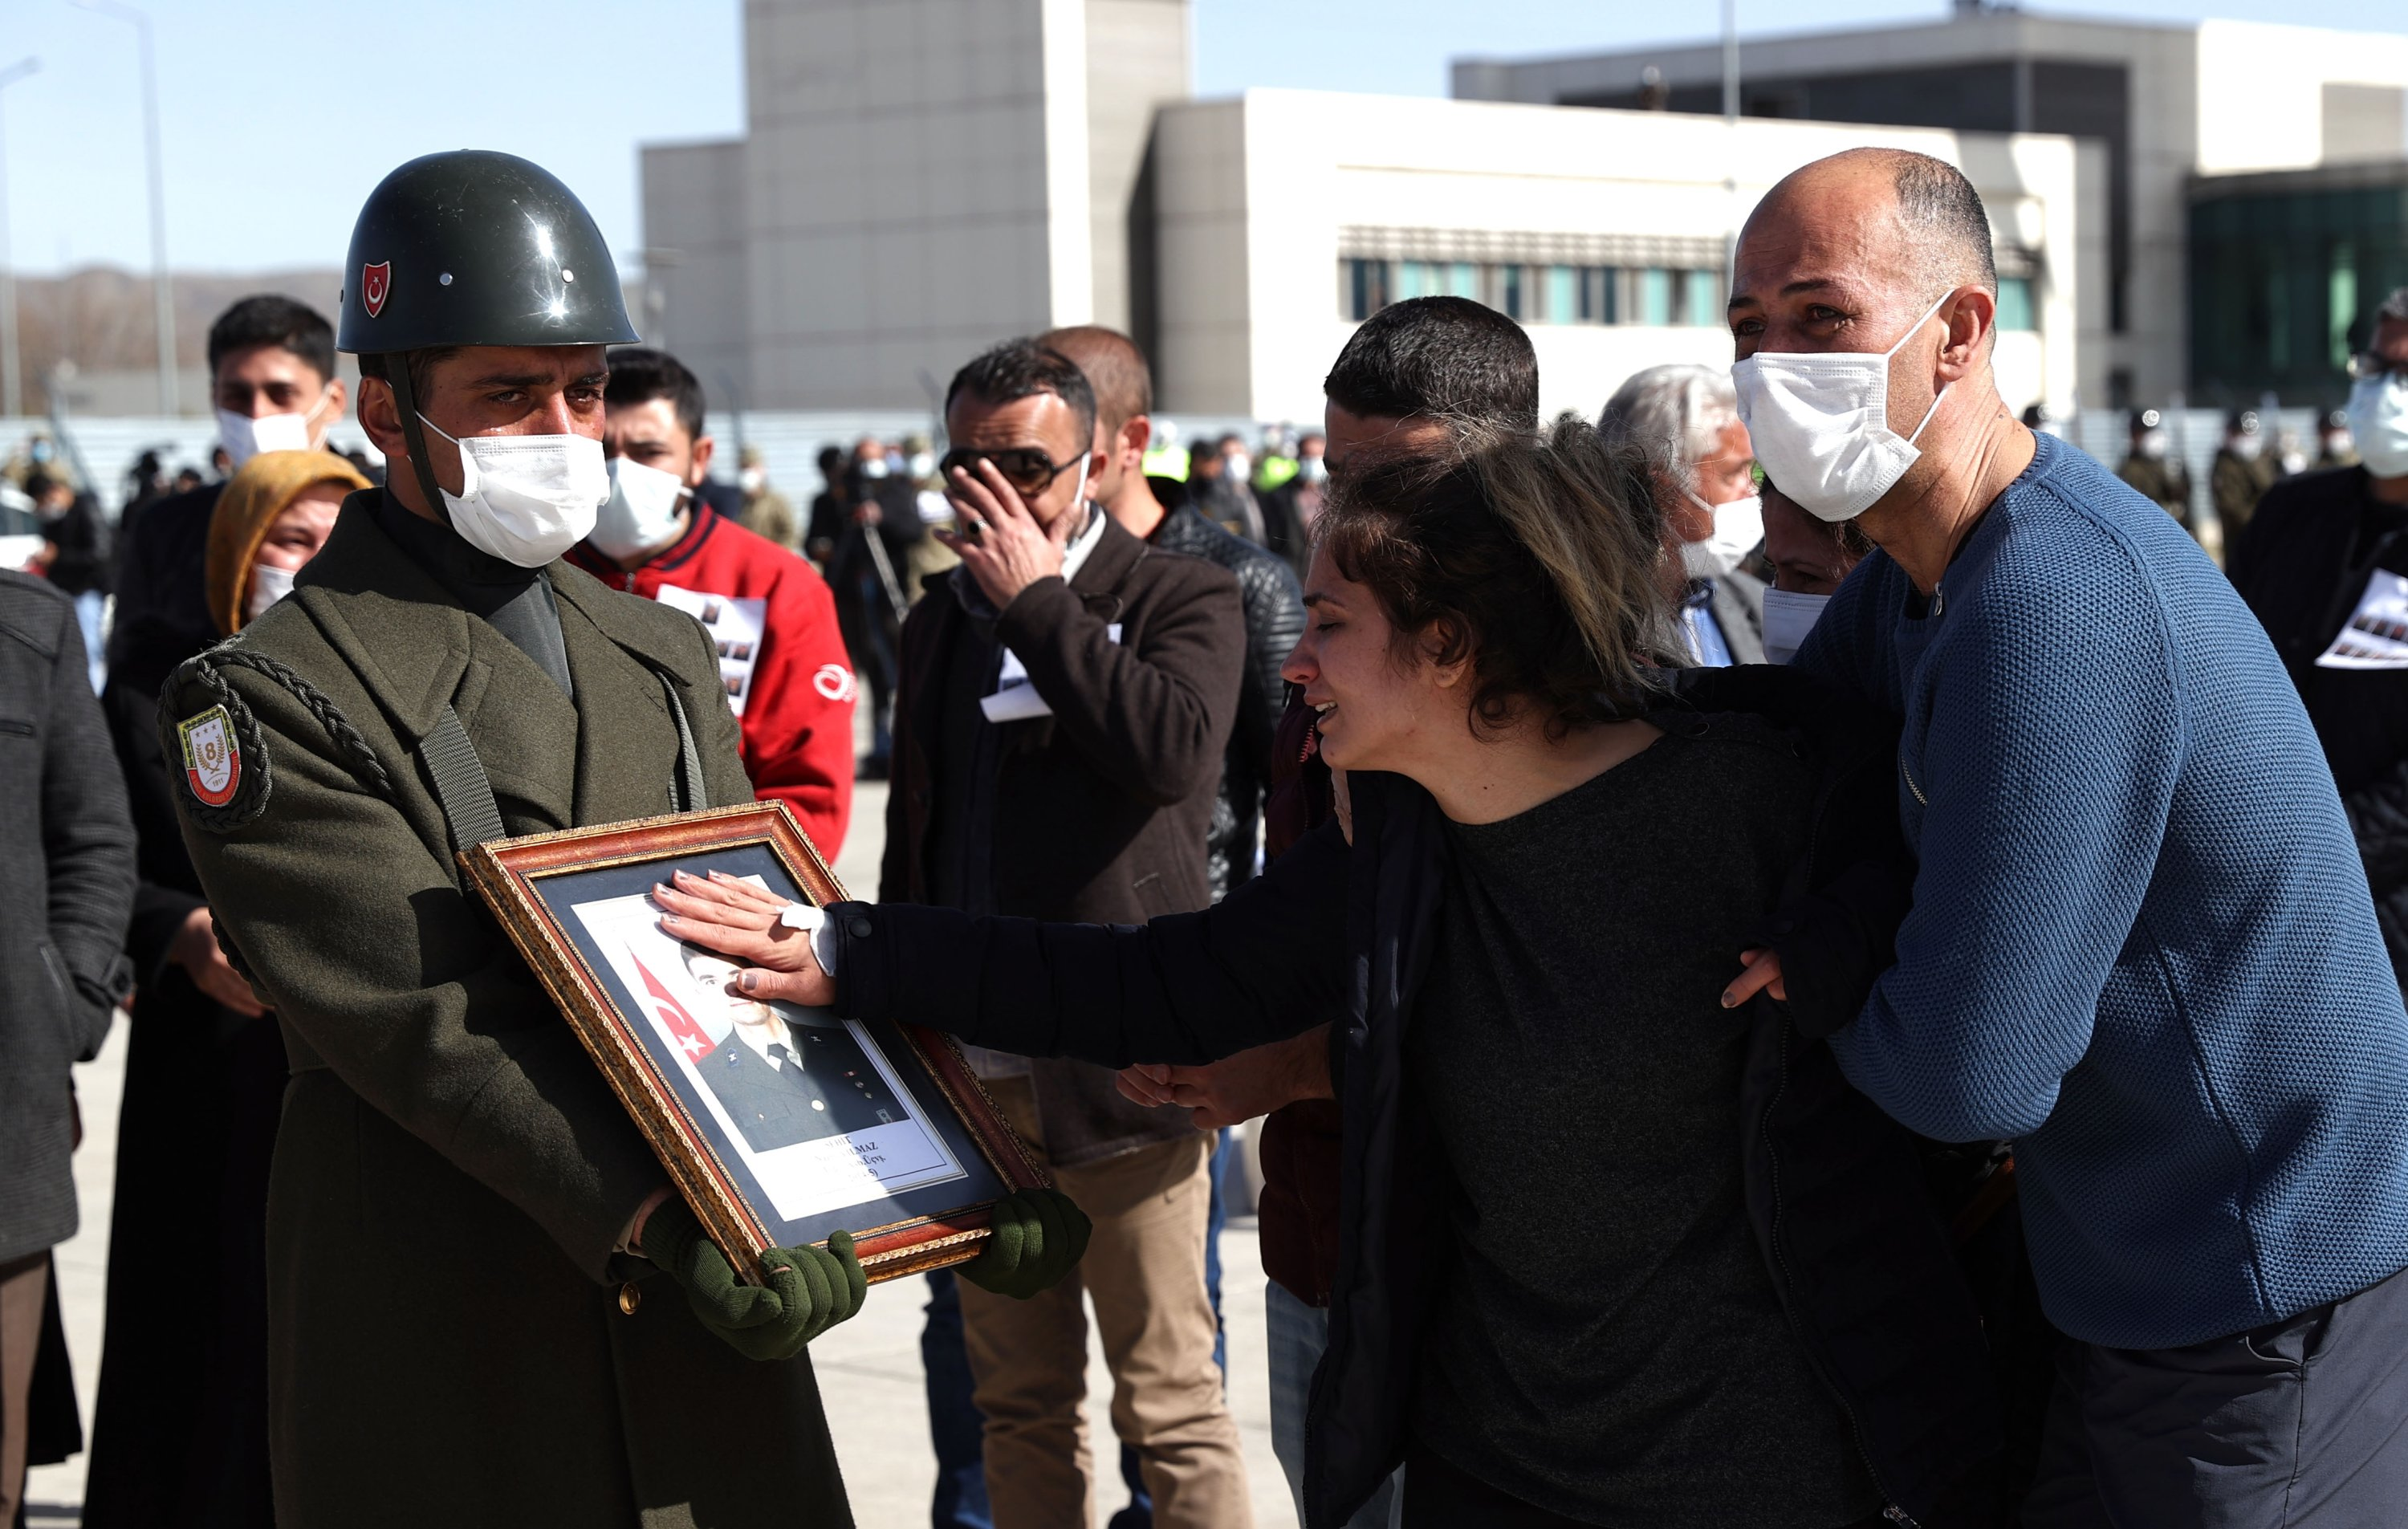 A relative of one of the victims touches his photo carried by a honor guard during the military funeral, in Elazığ, eastern Turkey, March 5, 2021. (AA PHOTO)